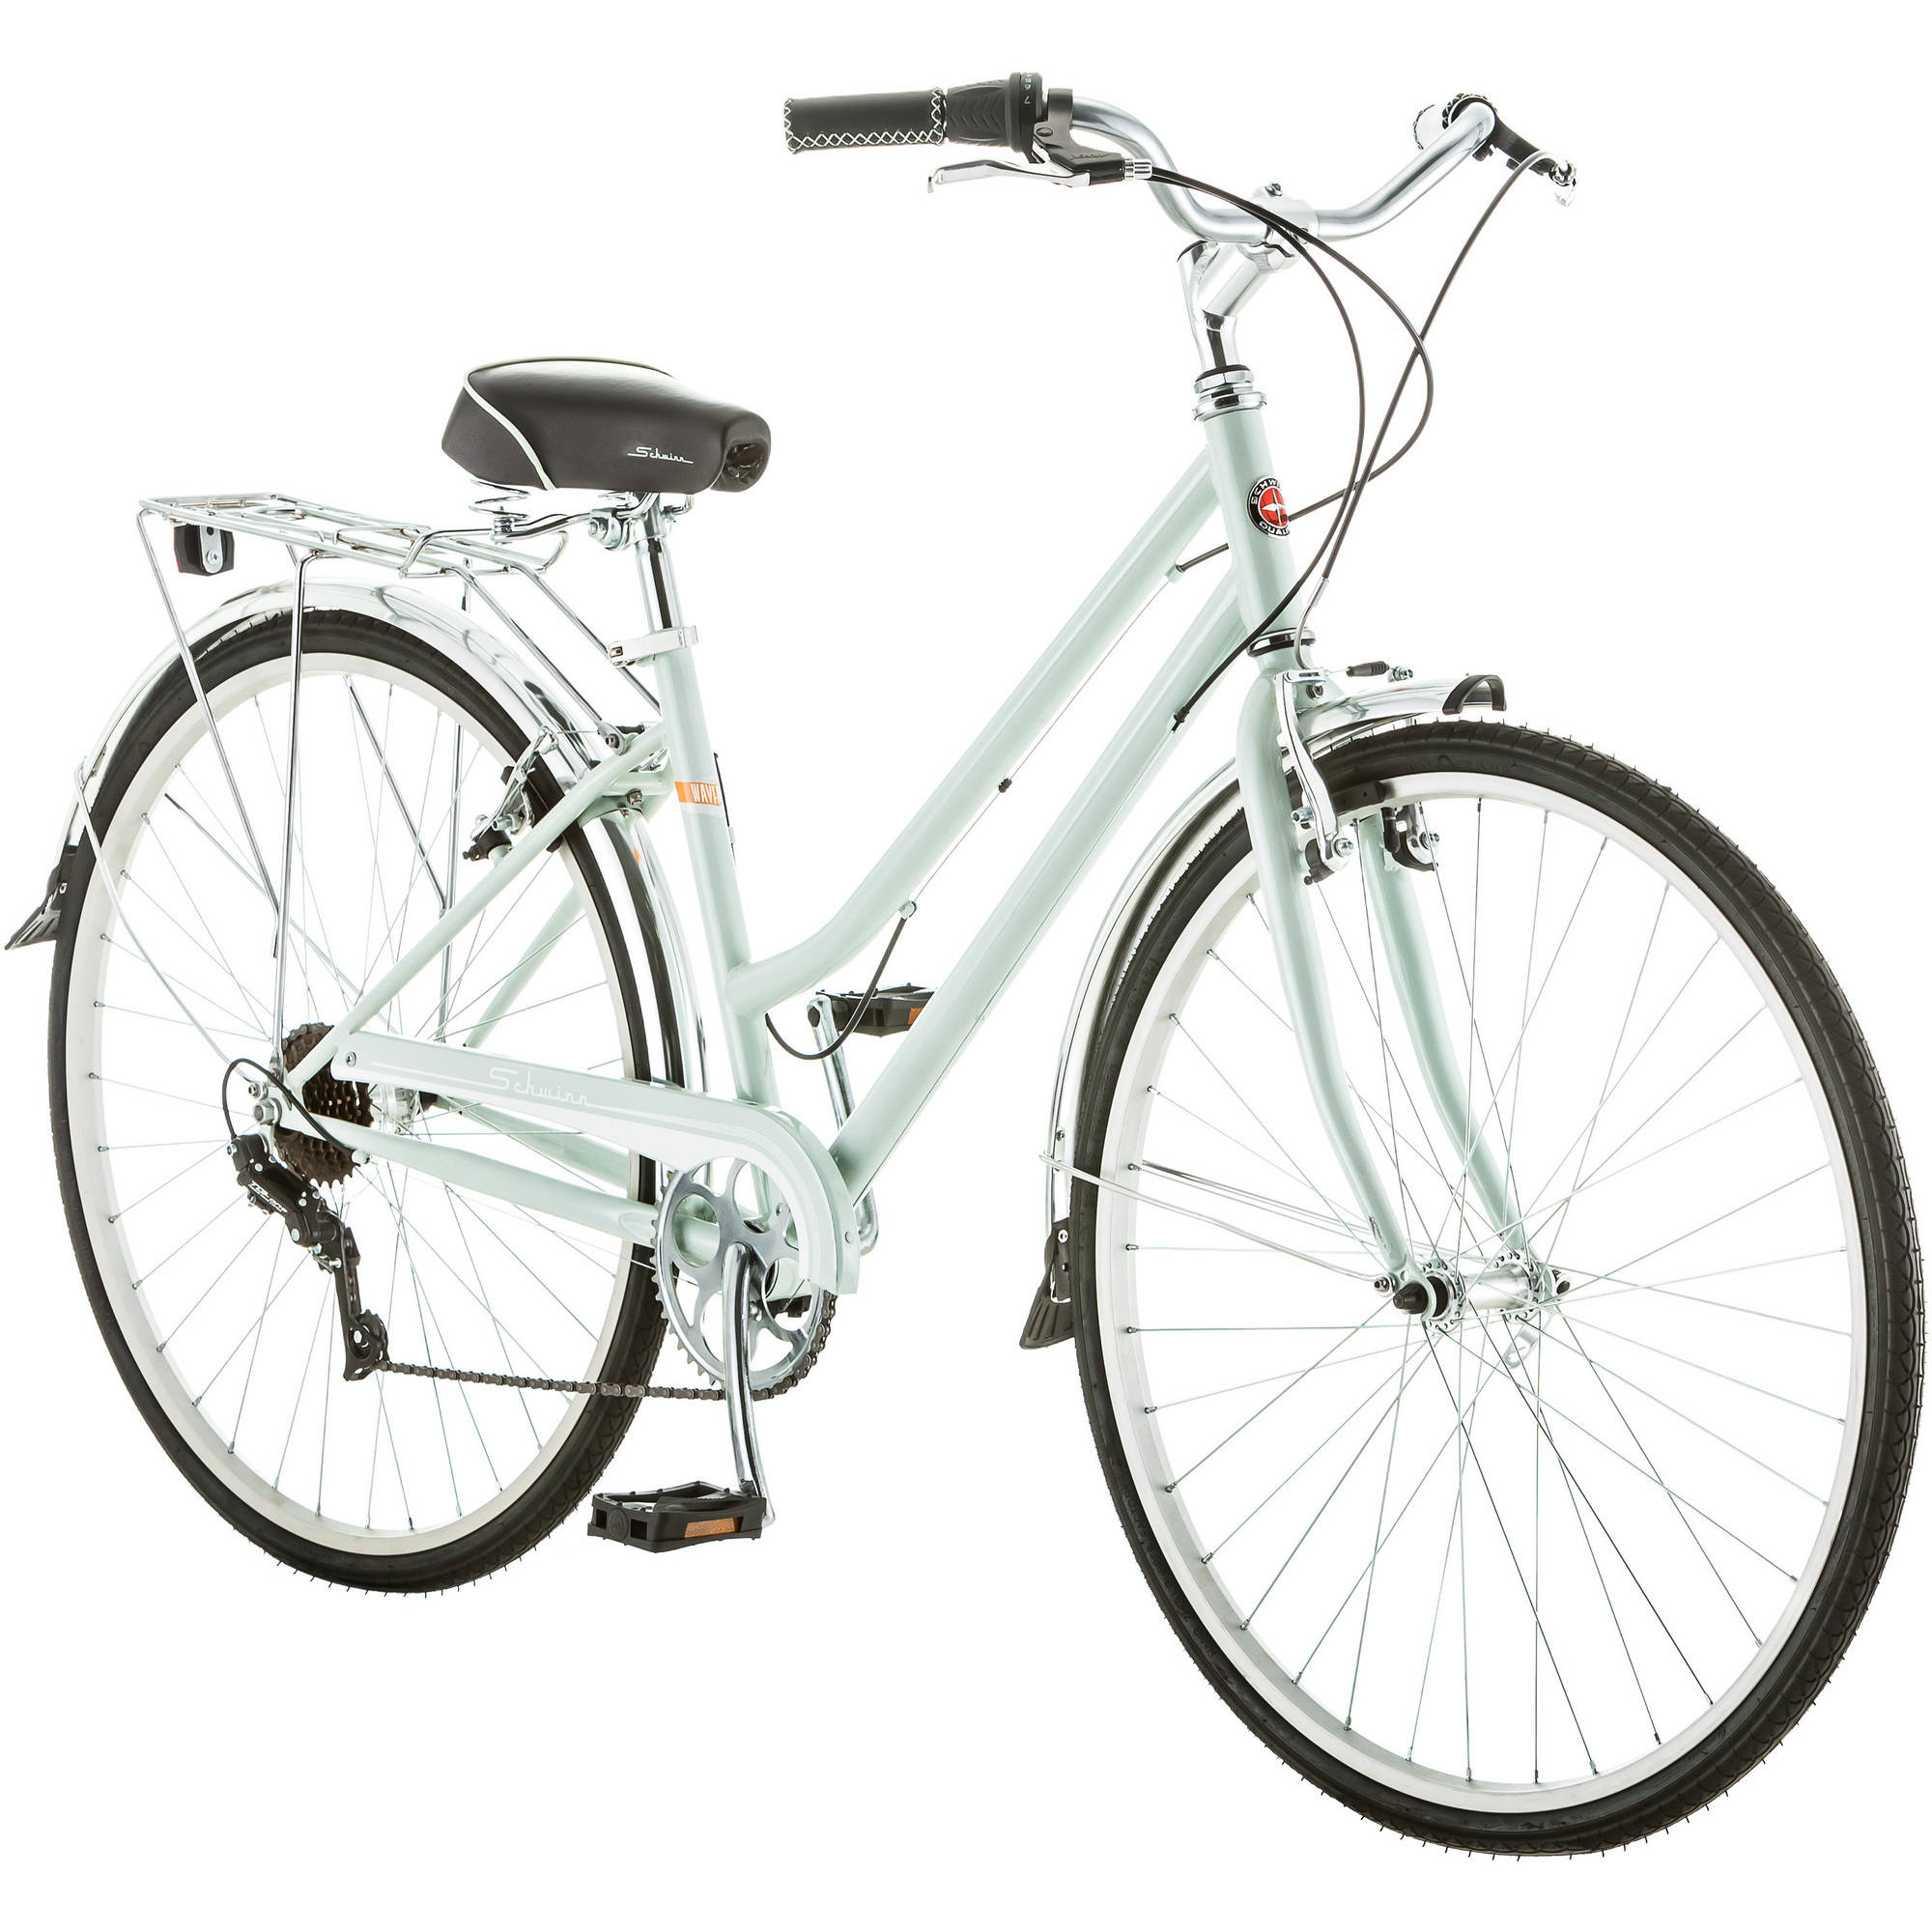 700C Schwinn Wayfarer Women's Bike, Mint